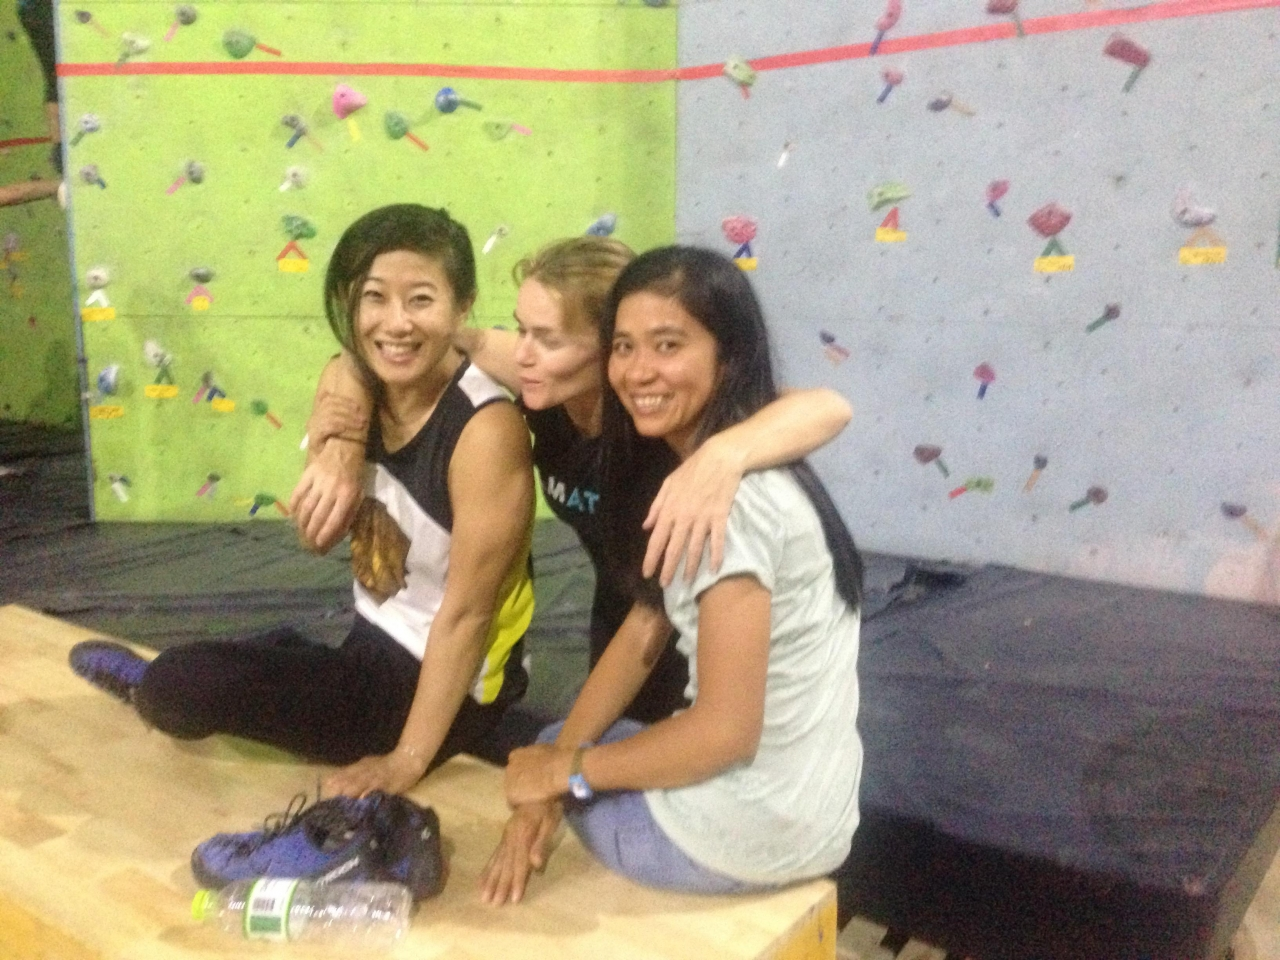 A picture from Phnom Penh Climbing Gym by Christoph Lüthy